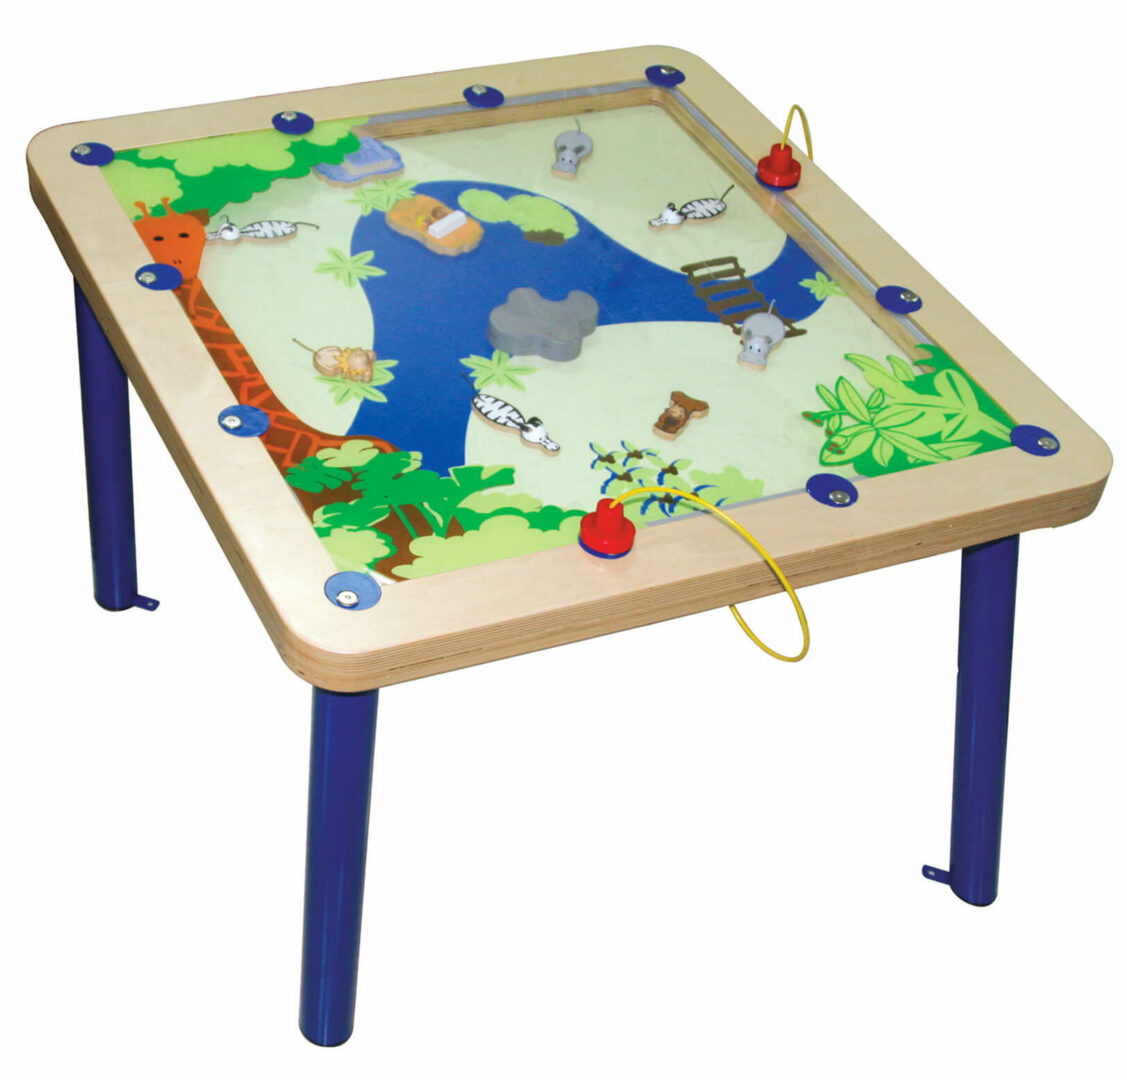 Safari Table Board Game ffor kids